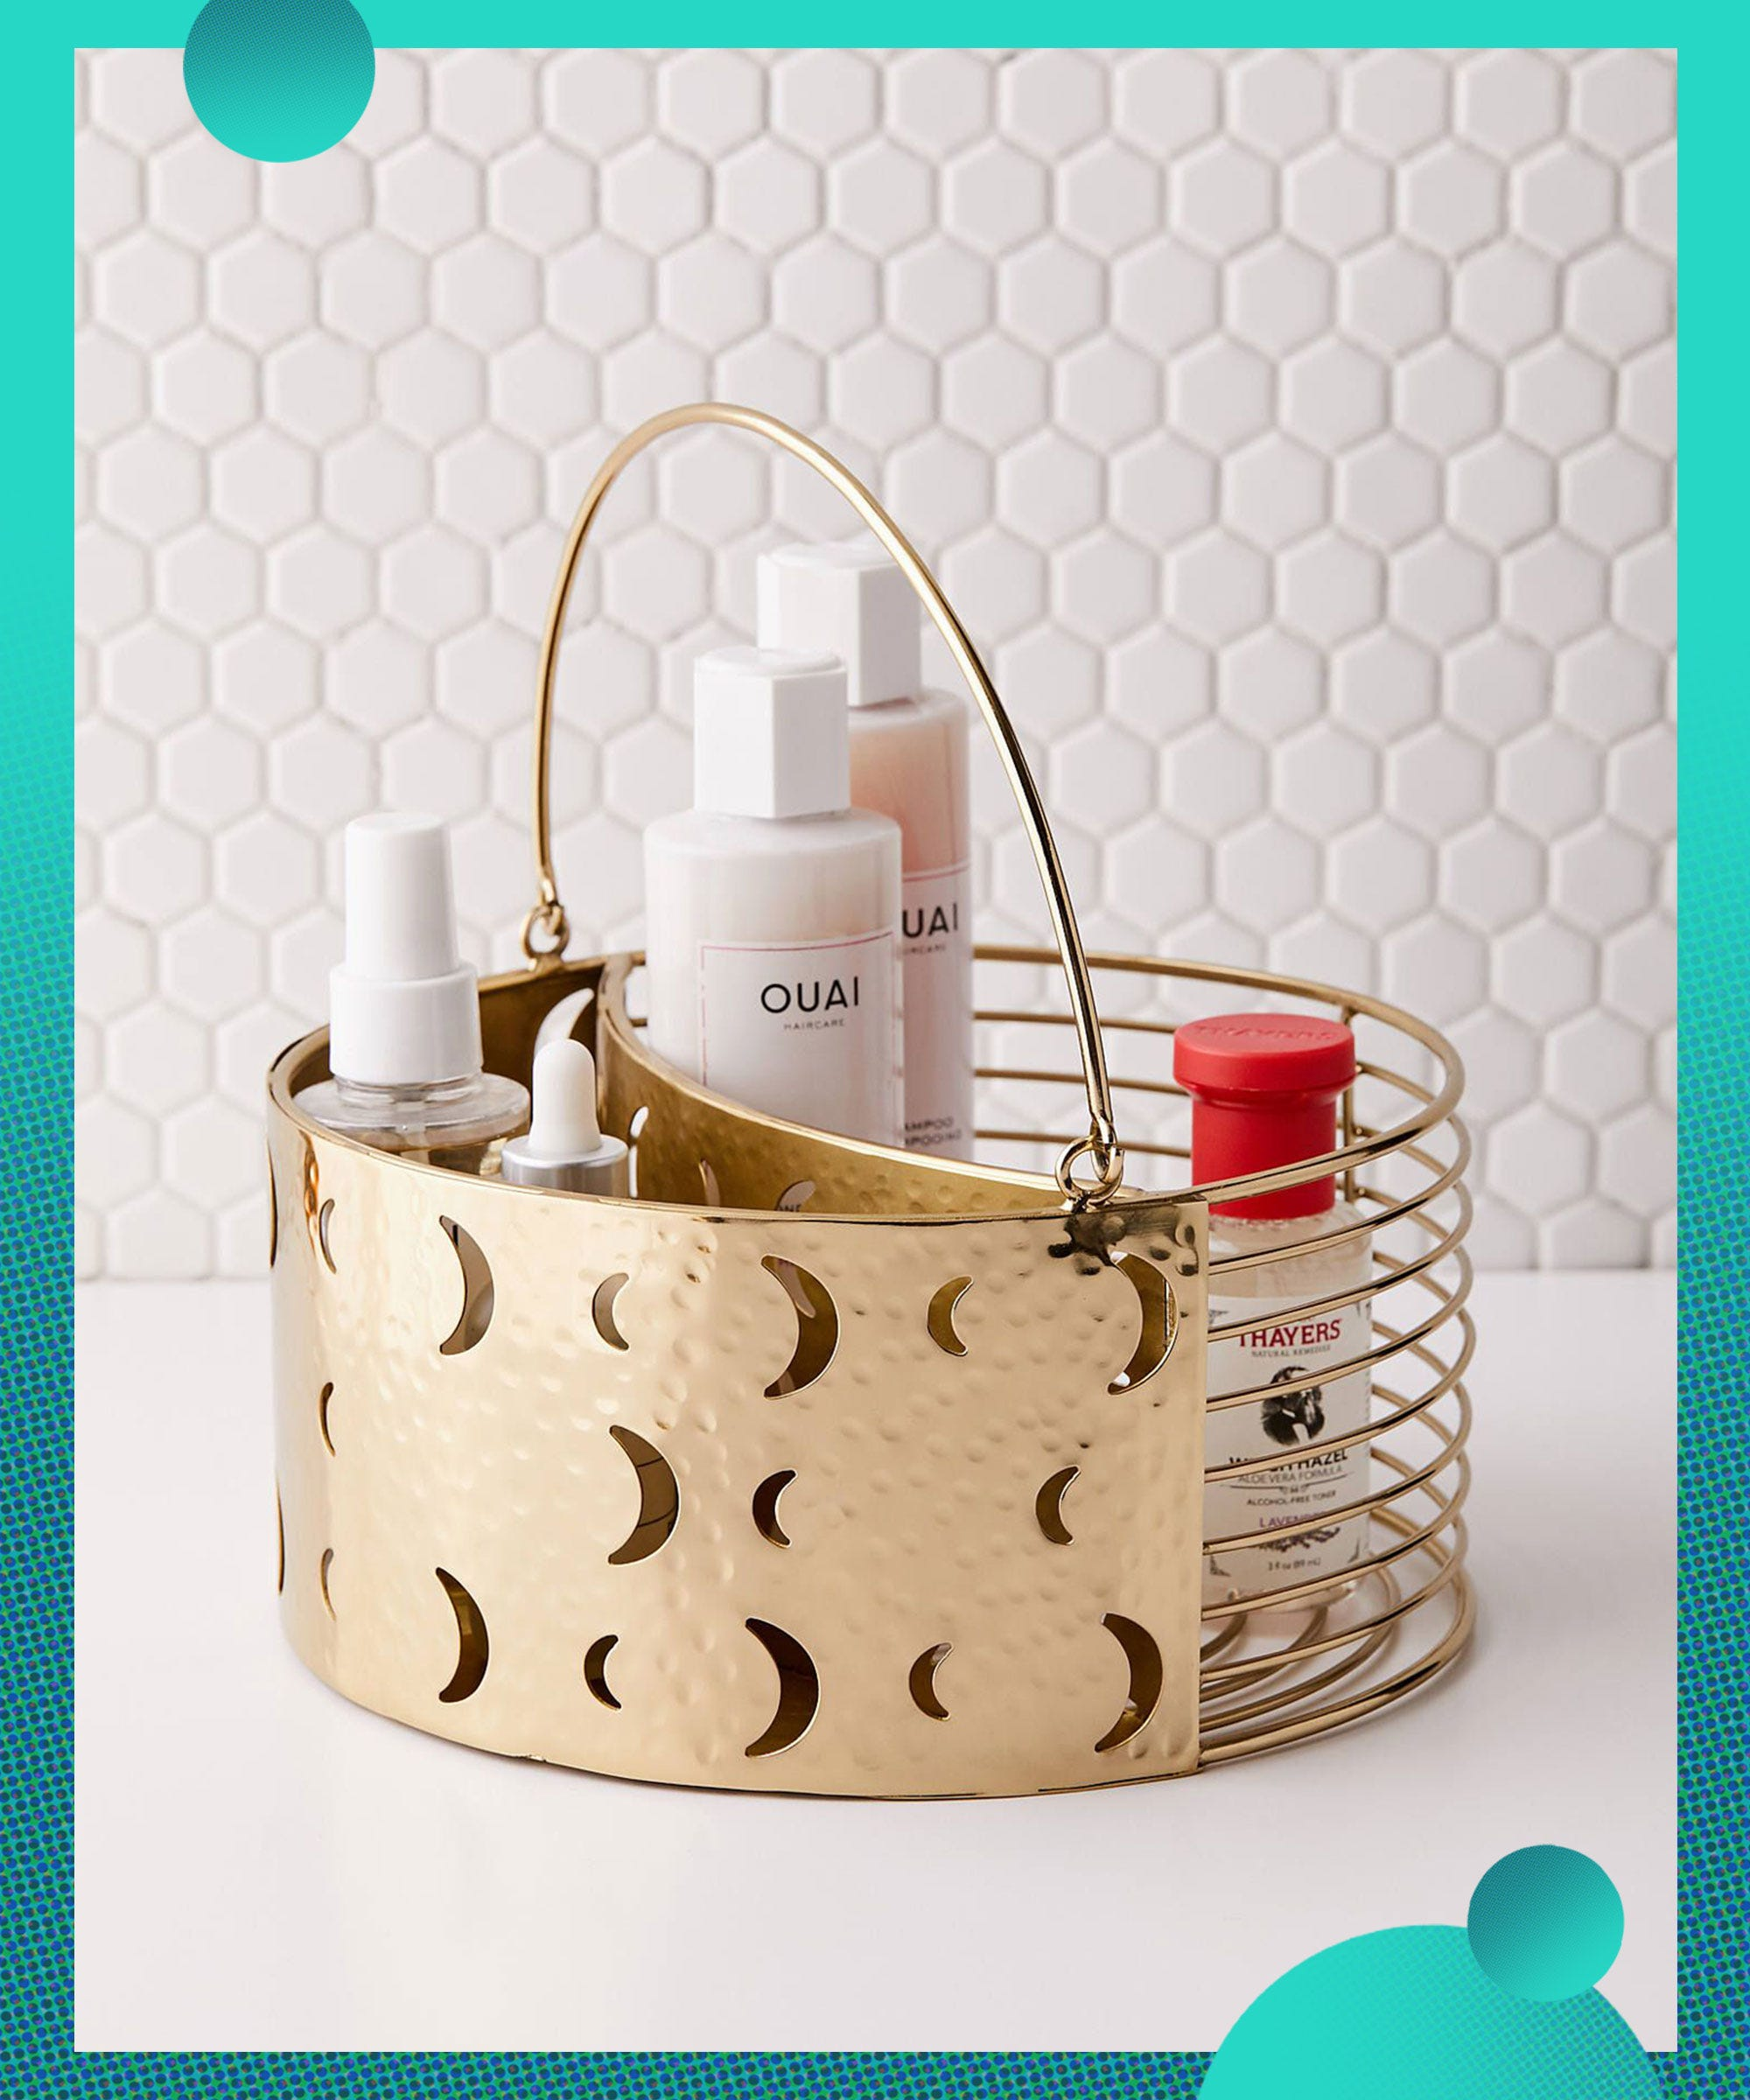 Best Shower Caddy For College 2020 Dorm Bathroom Gear